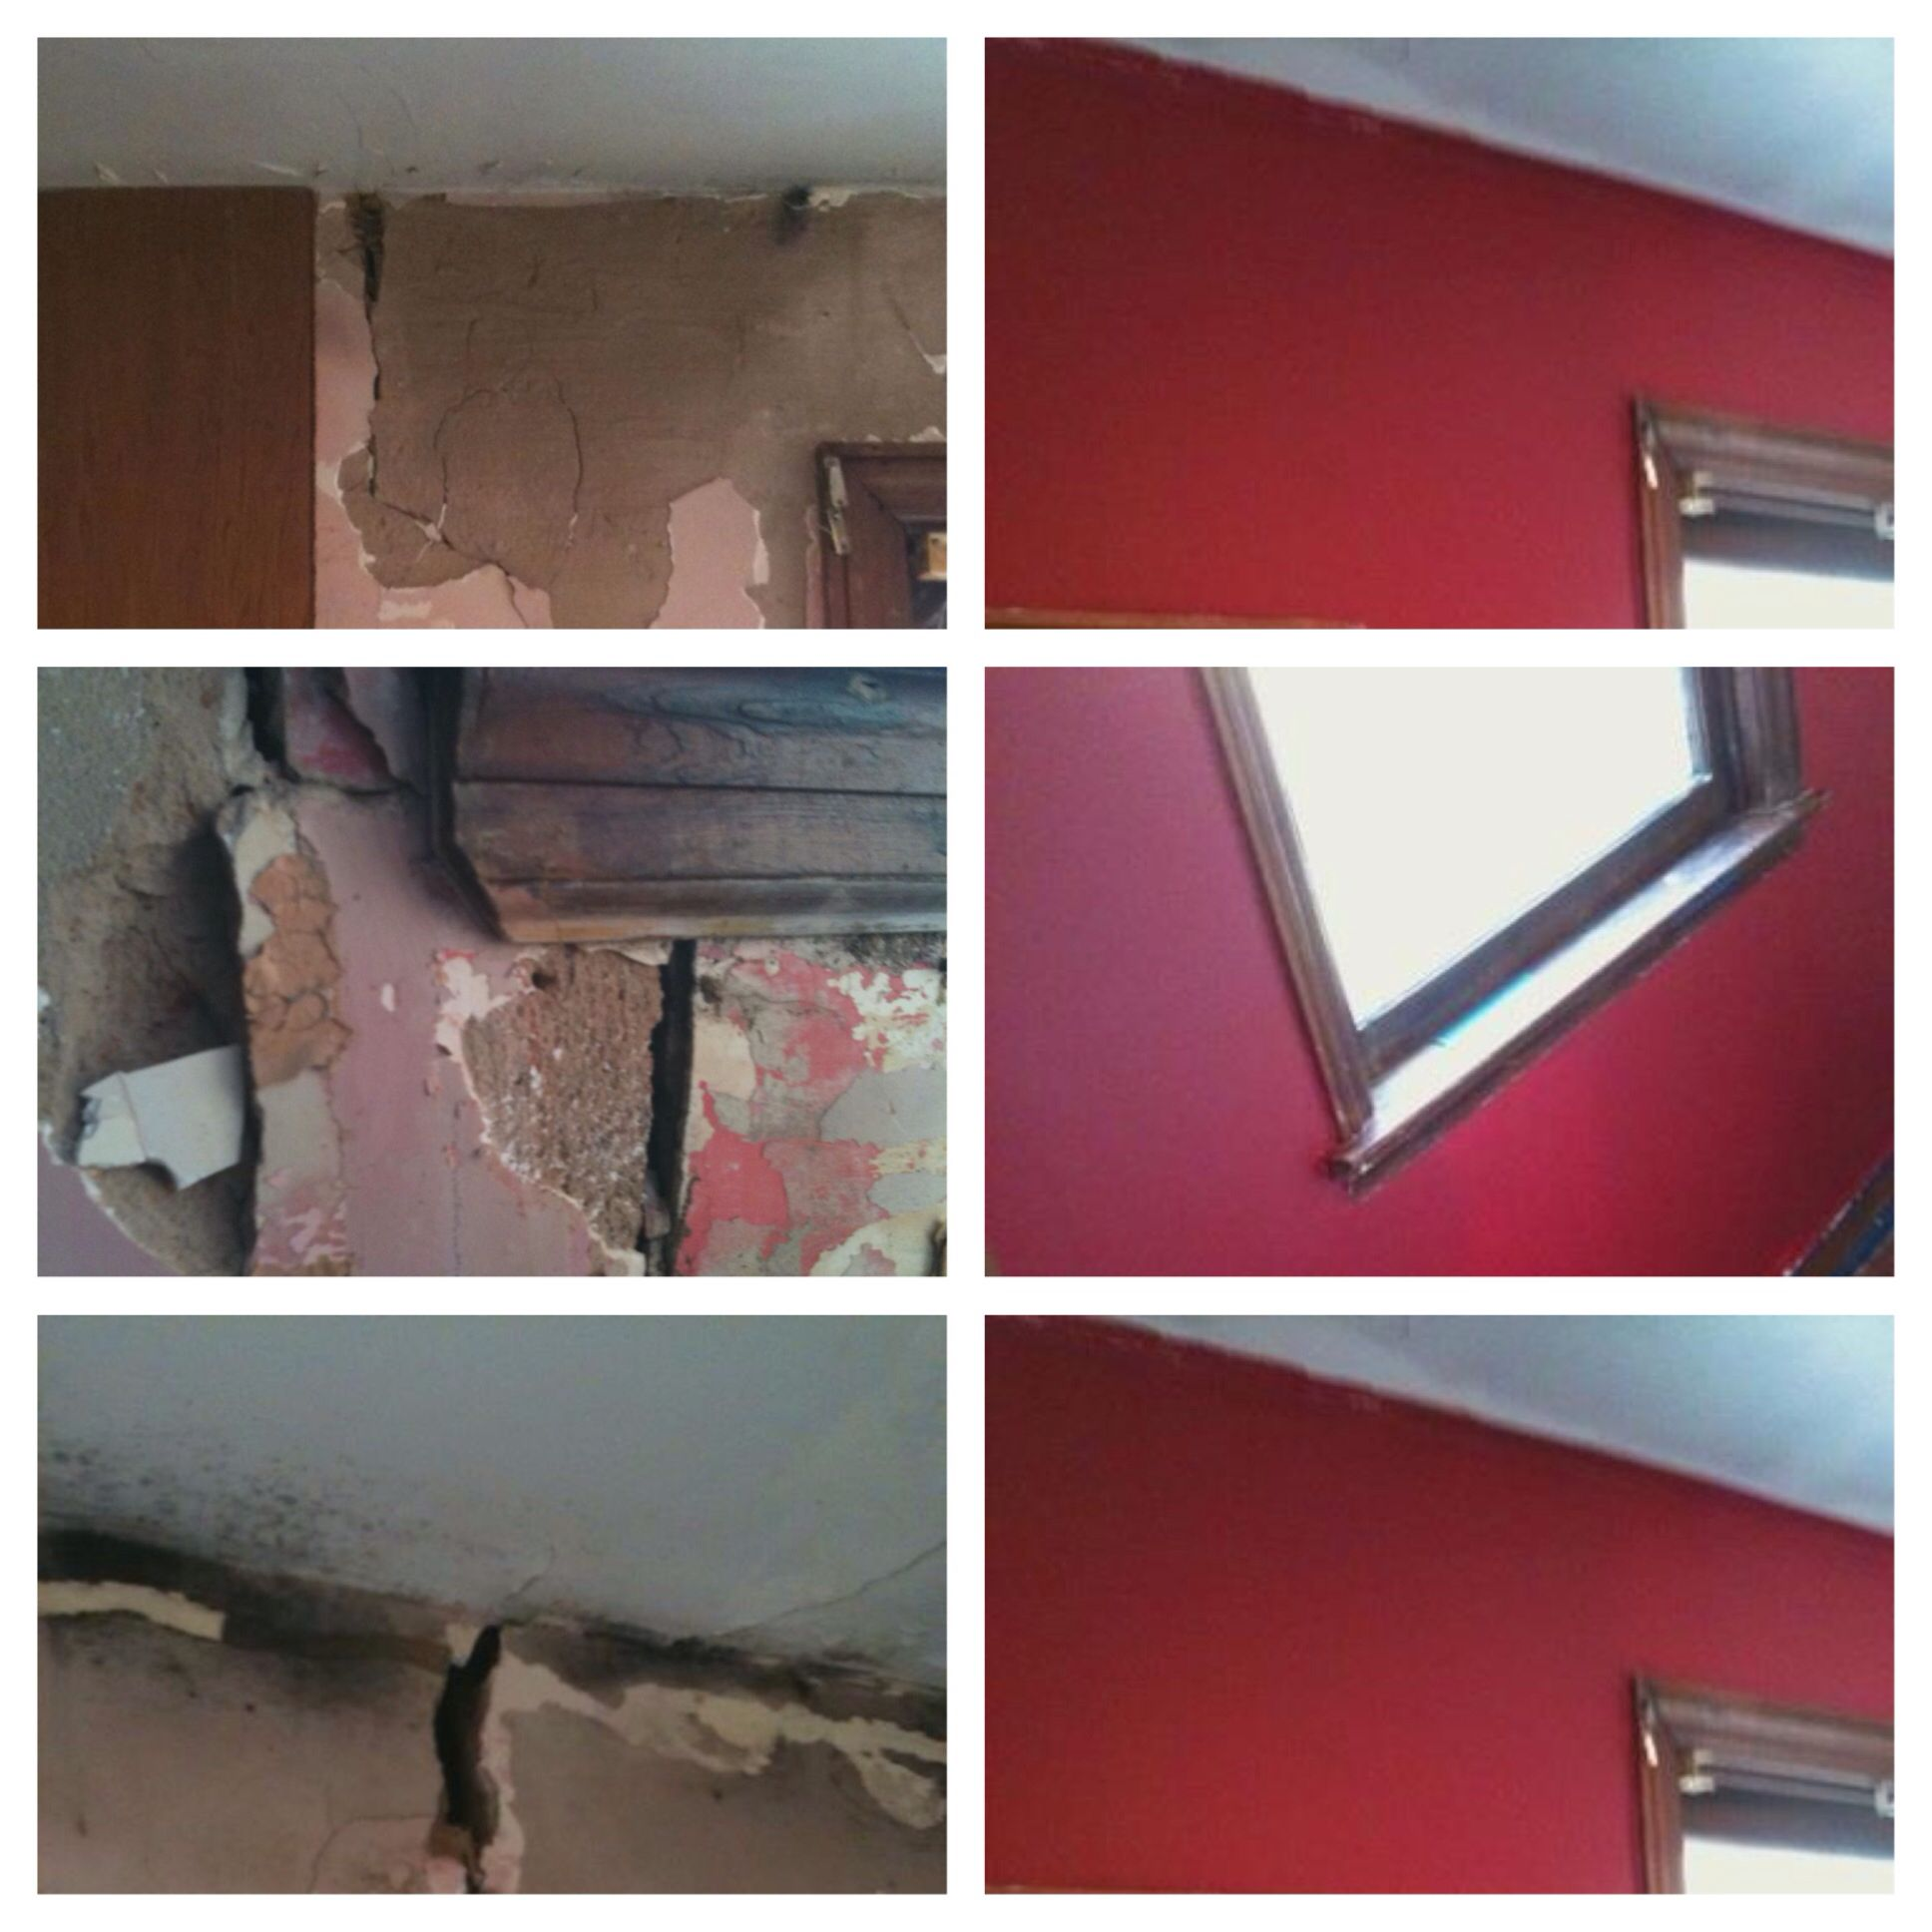 Diy Remediation S To Our Home This Example Is Of Our Boys Bedroom We Had Mold Problems Throughout The House Slo Mold In Bathroom Knock Down Wall Wall Molding